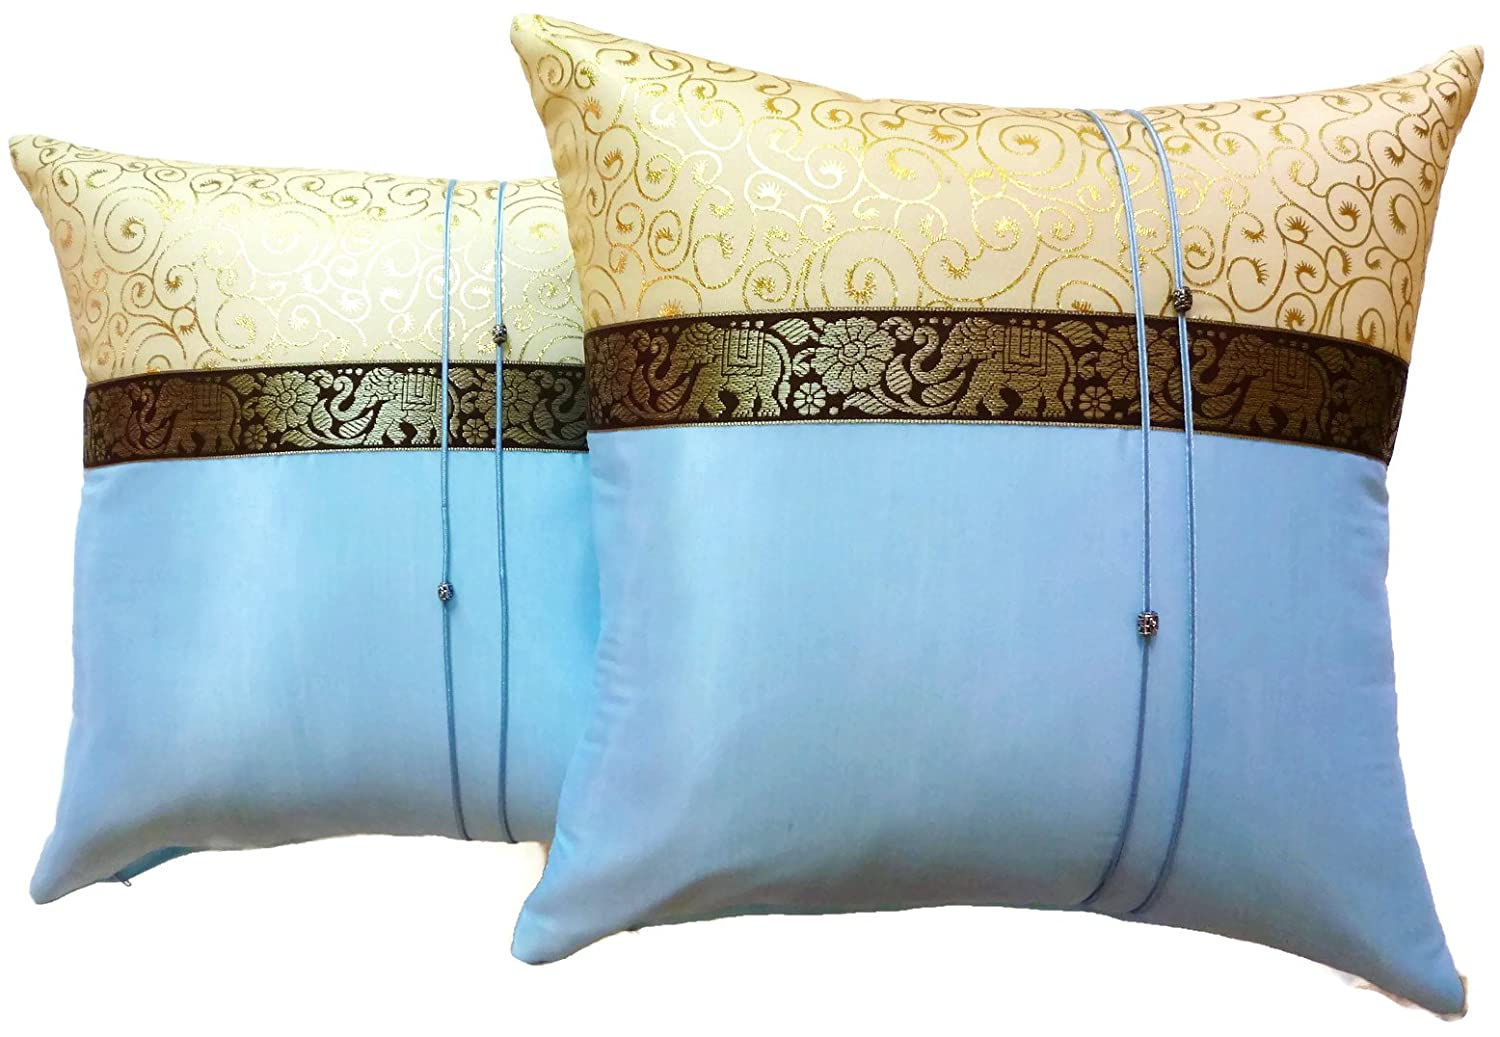 Set of Two Light Blue Silk Throw Cushion Pillow Cover Case With Elephant Middle Stripe for Decorative Living Room Sofa Car Size 16 x16 Inches COMIN16JU038913